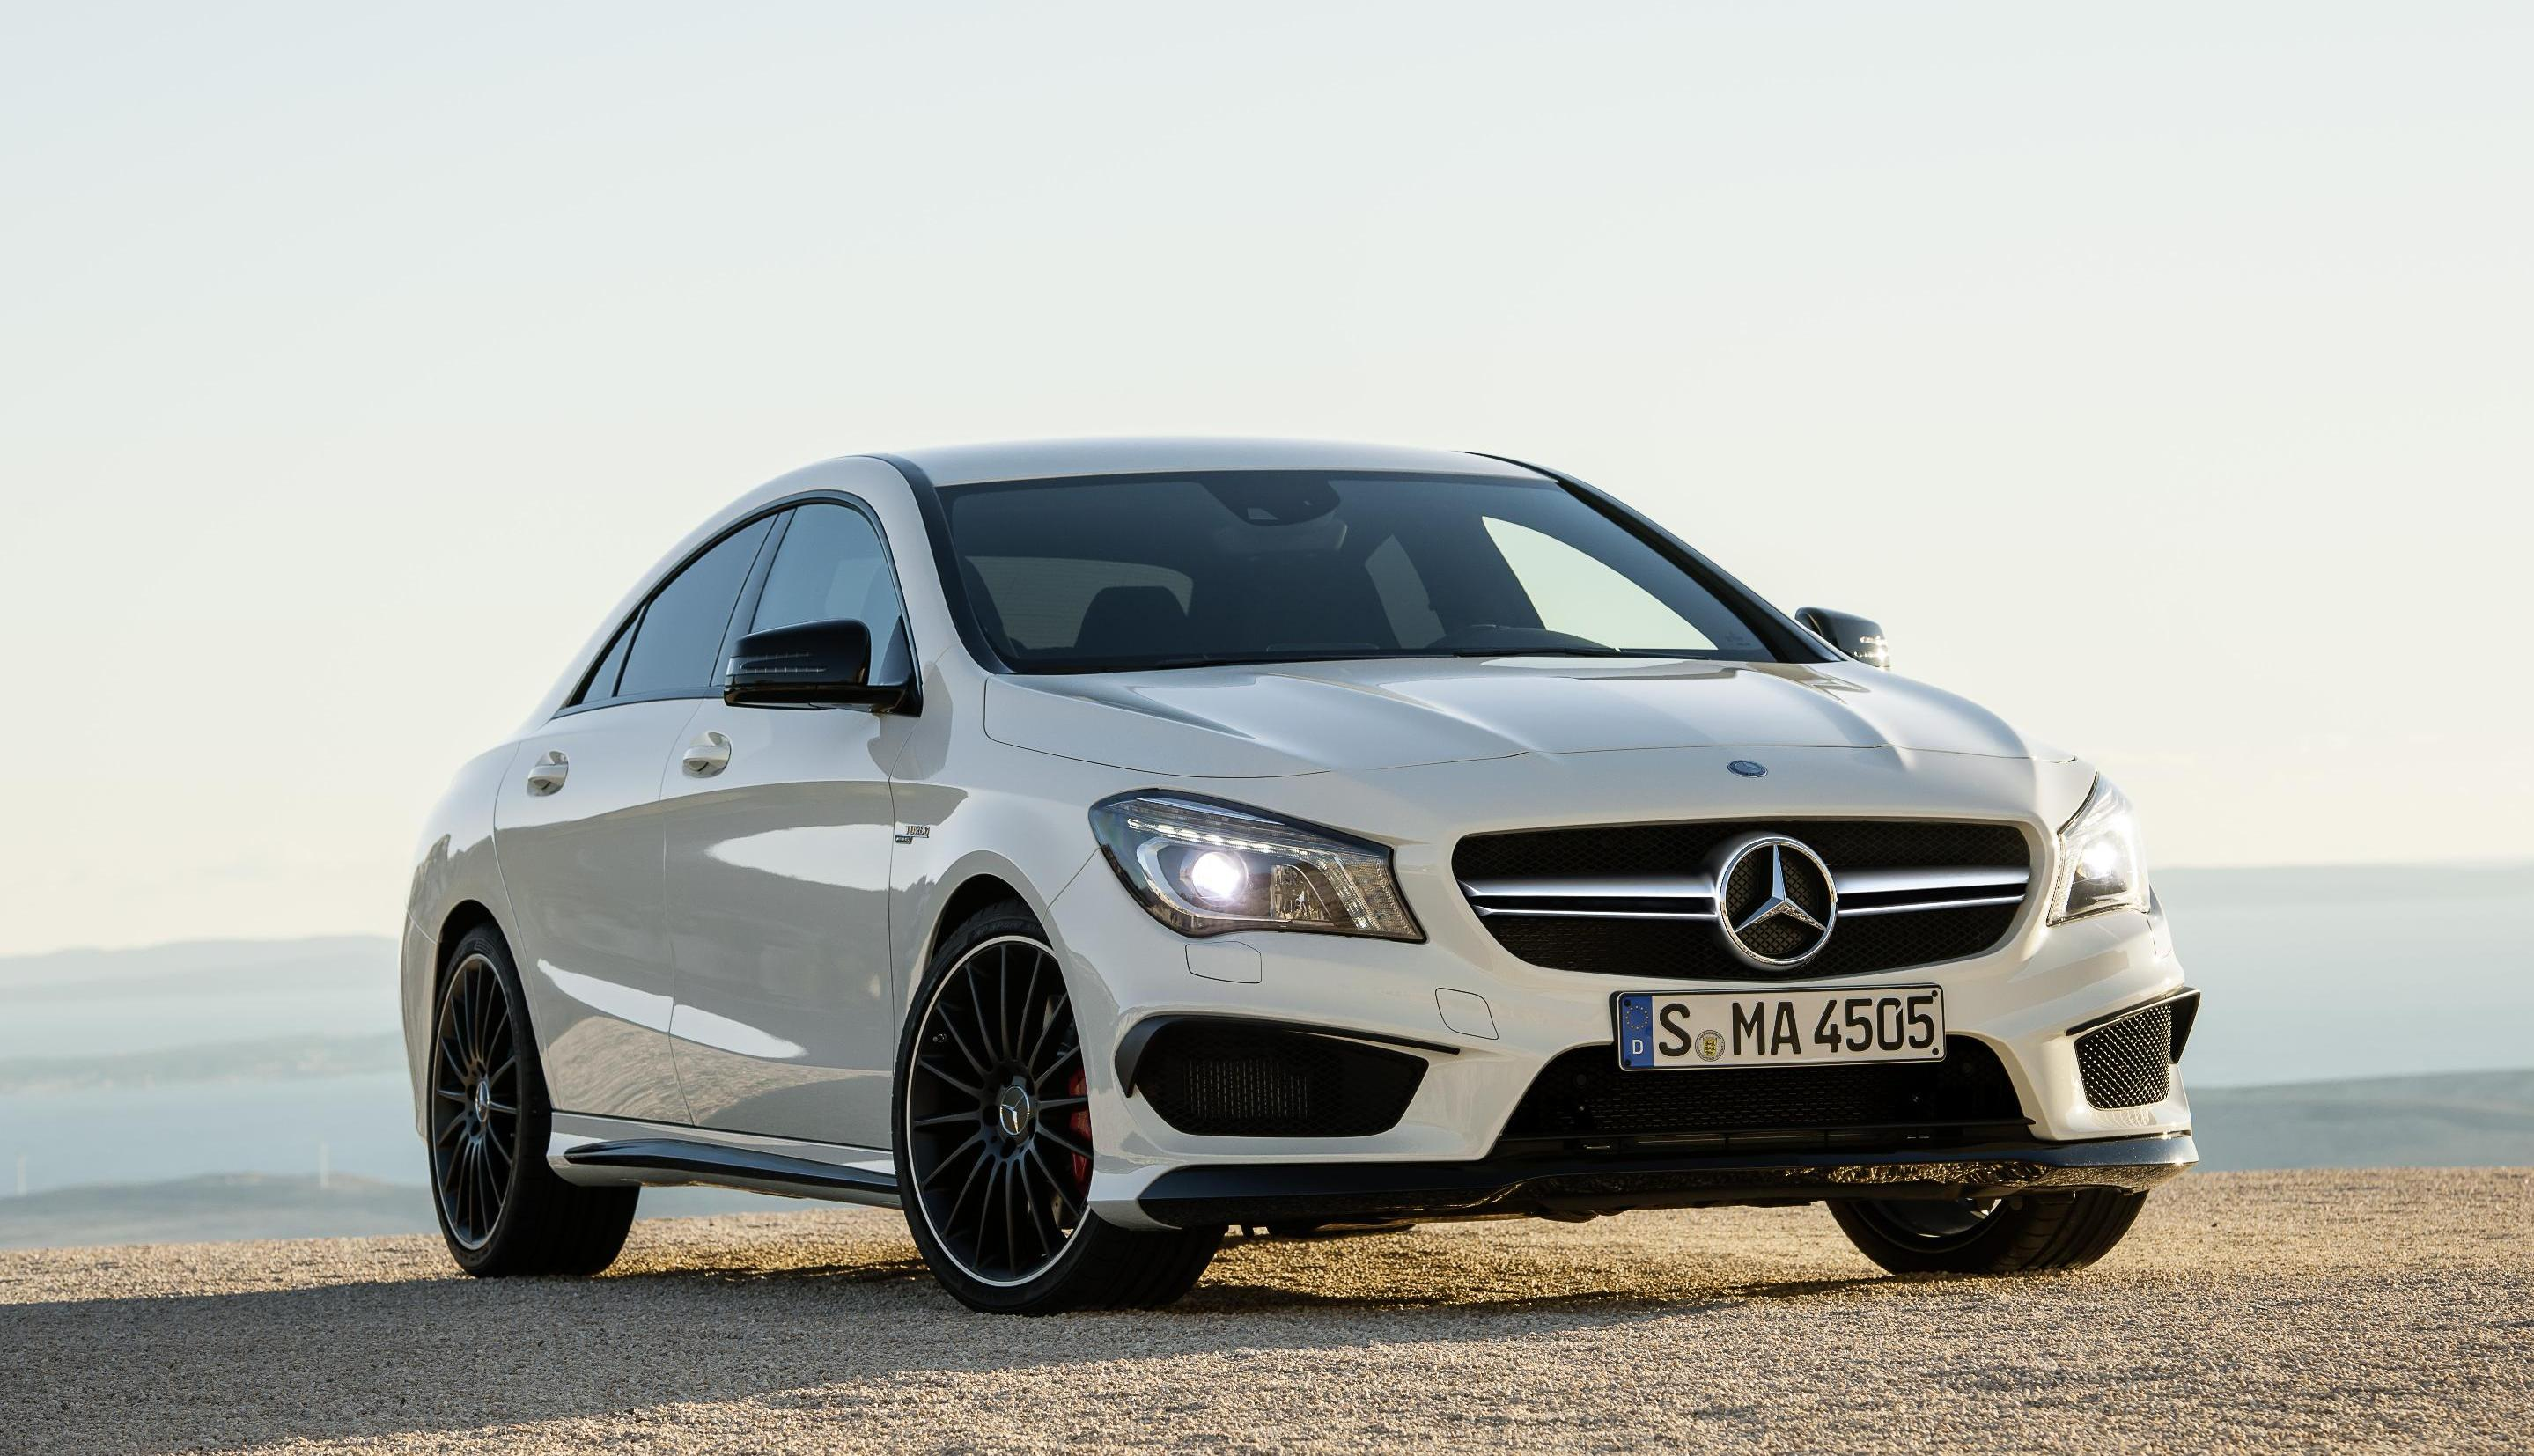 Mercedes-Benz Might Use Bio-Diesel in its Cars: Diesel Ban Impact